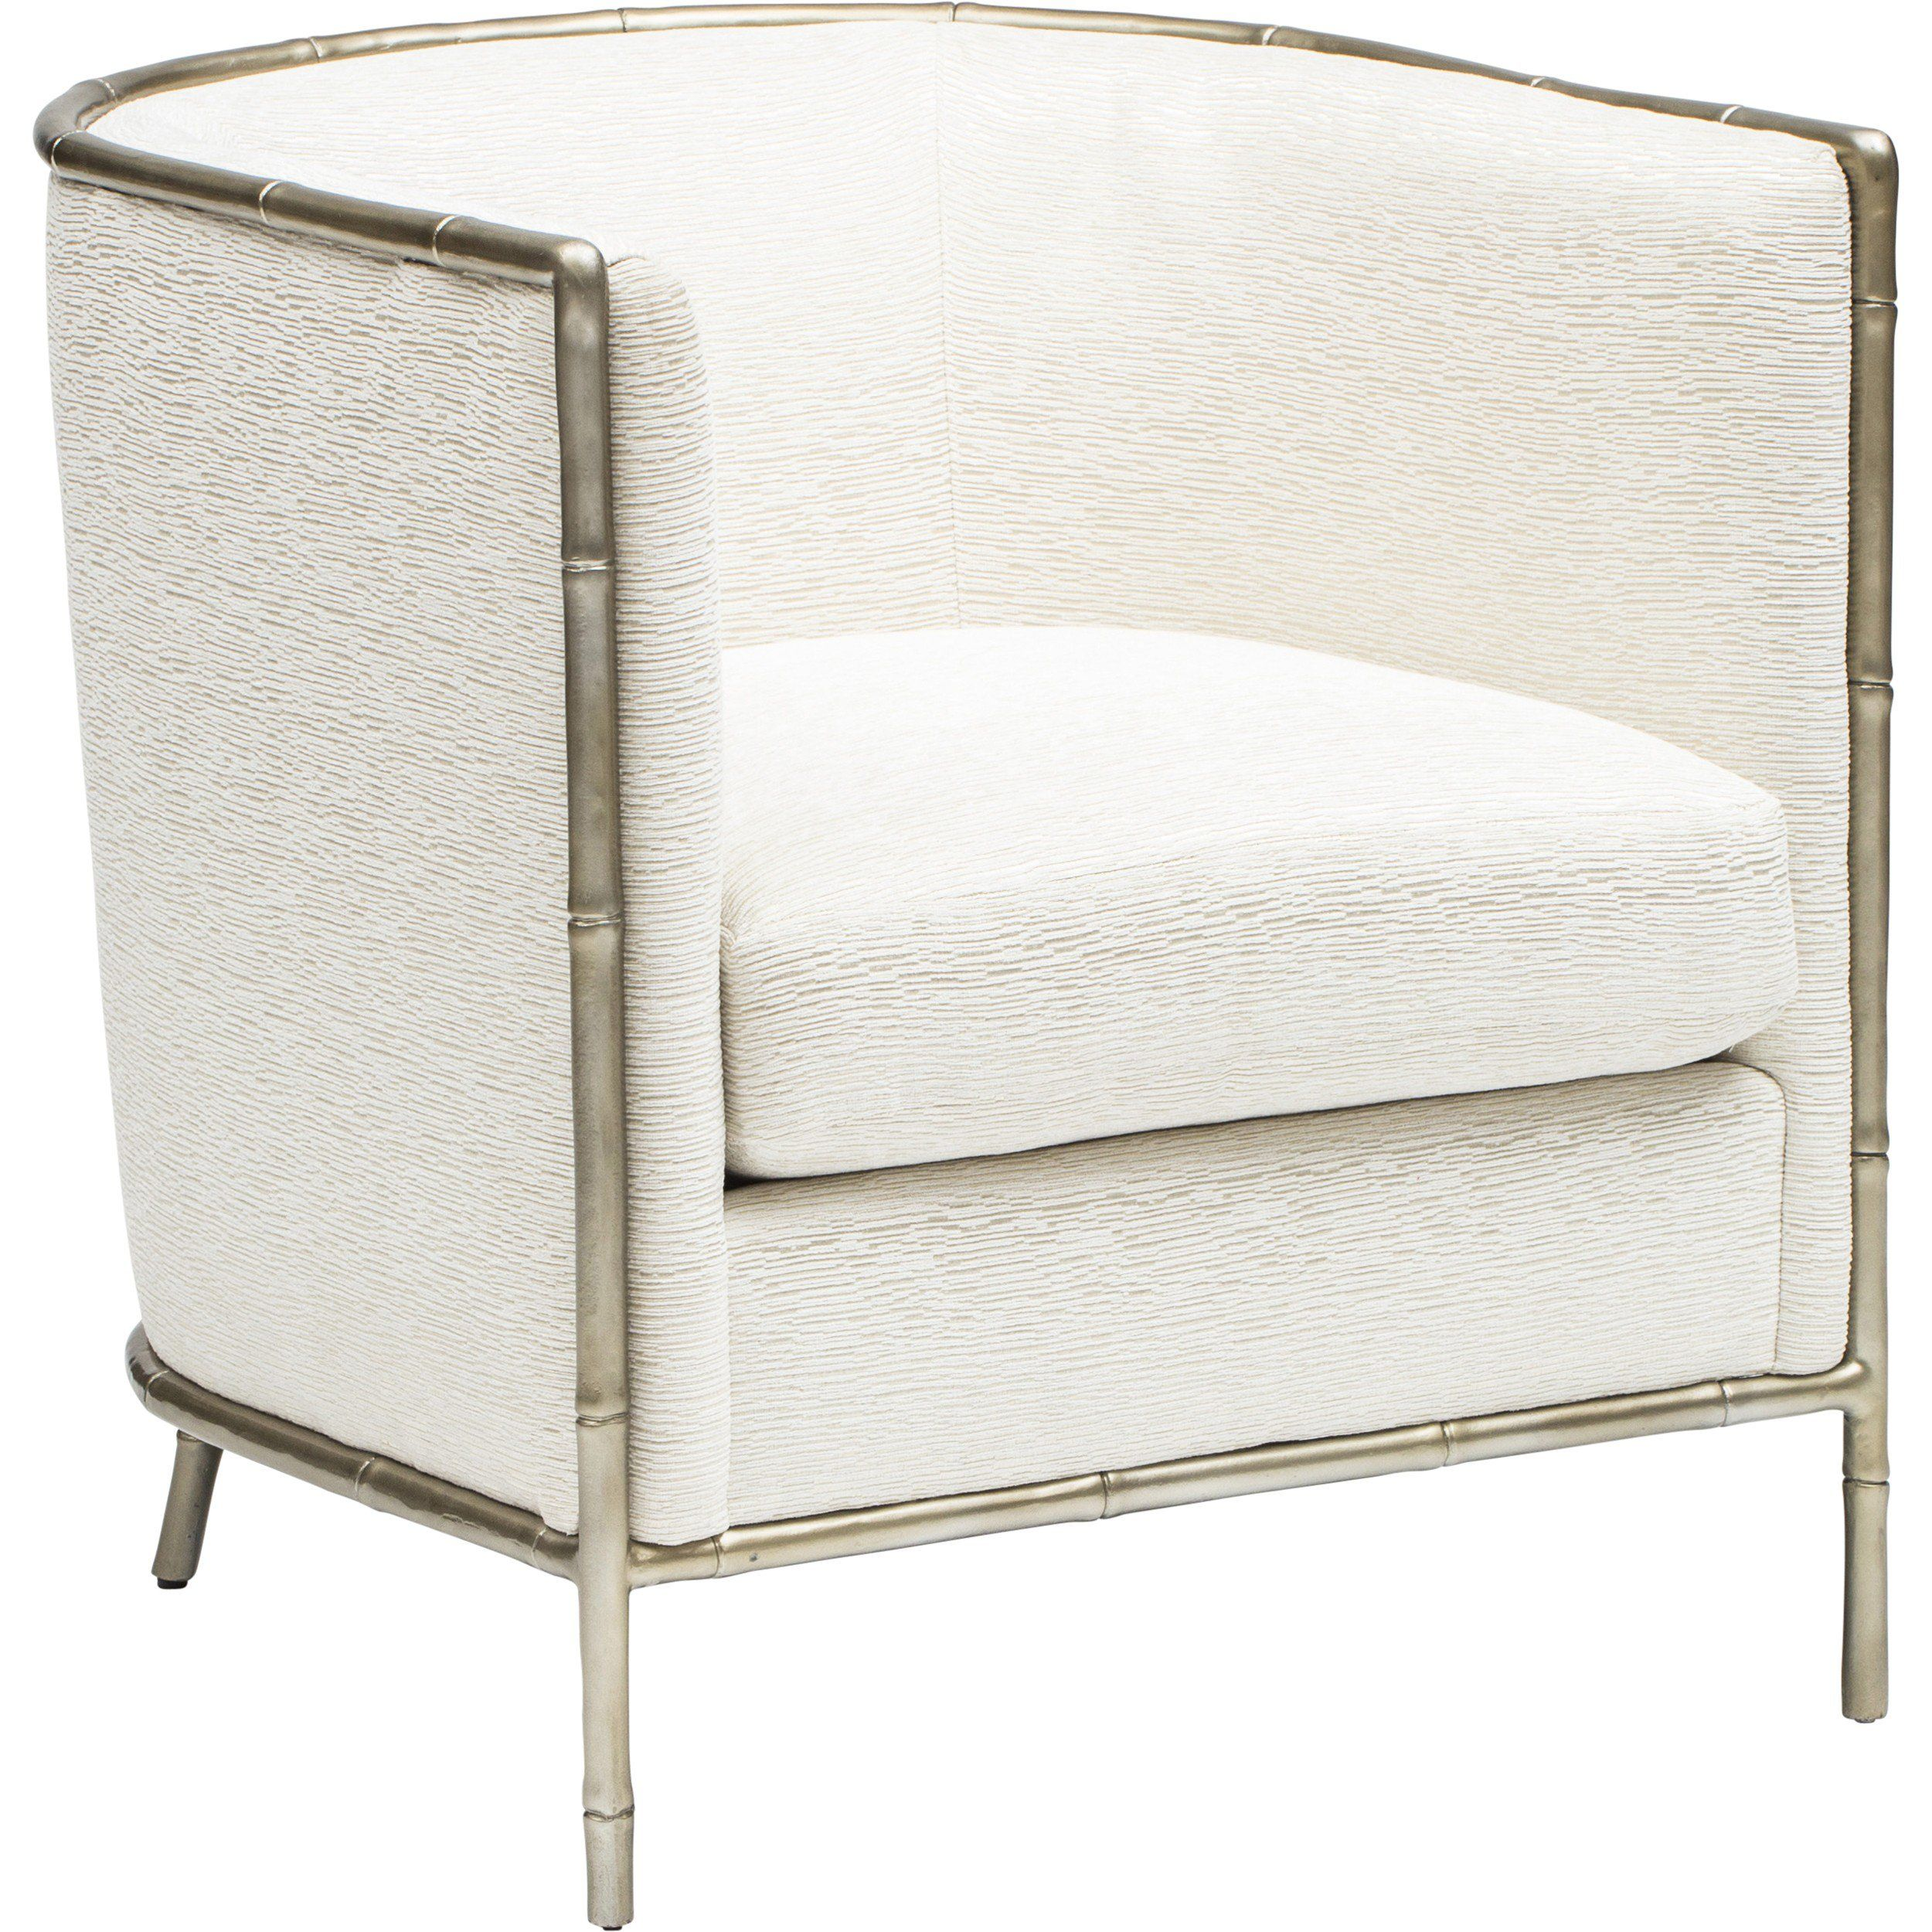 Meredith Chair Luxe Furniture High Fashion Home Contemporary